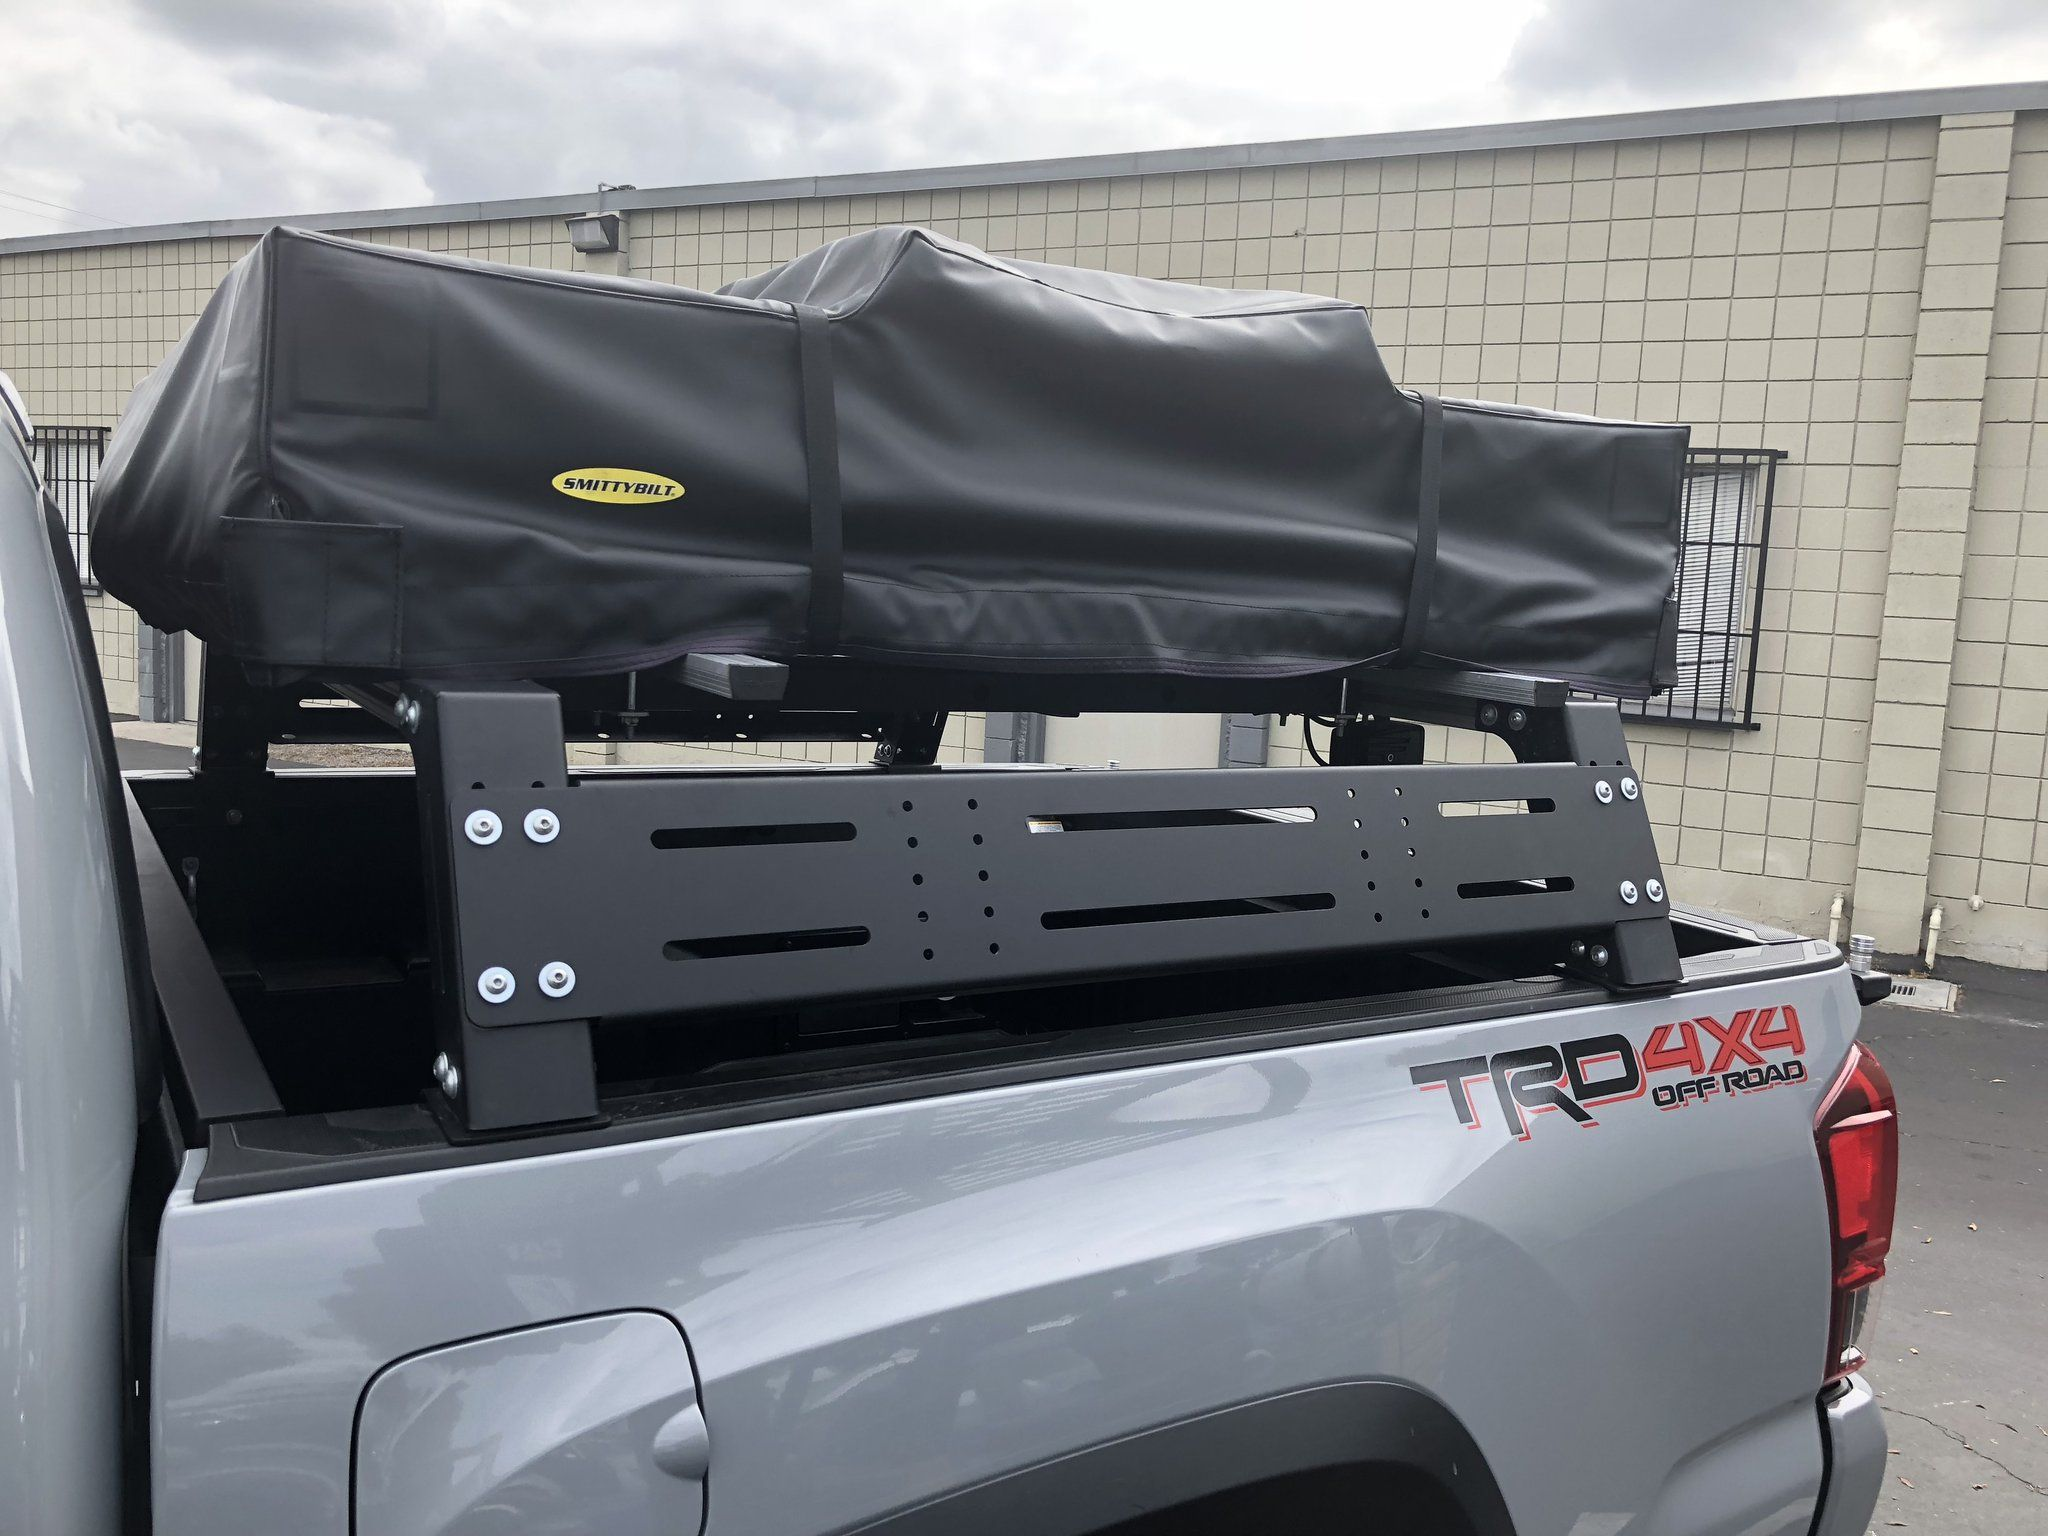 Overland bed racks in low, mid and tall heights for both